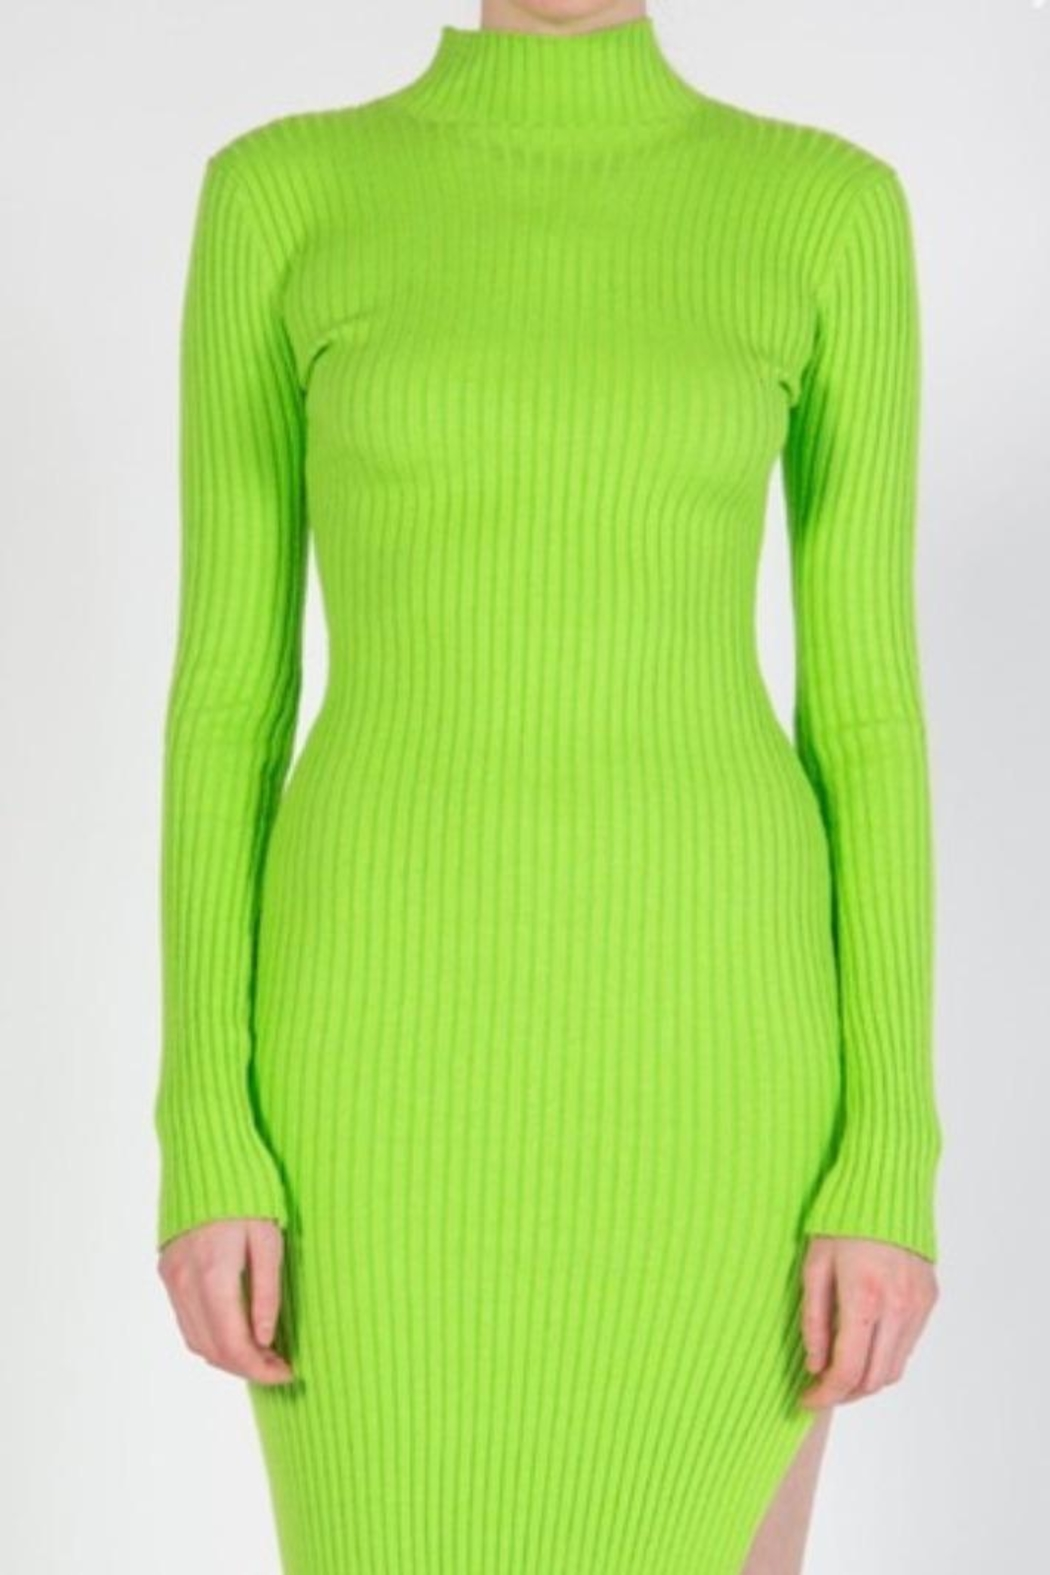 BEULAH STYLE Lime Sweater Dress - Back Cropped Image